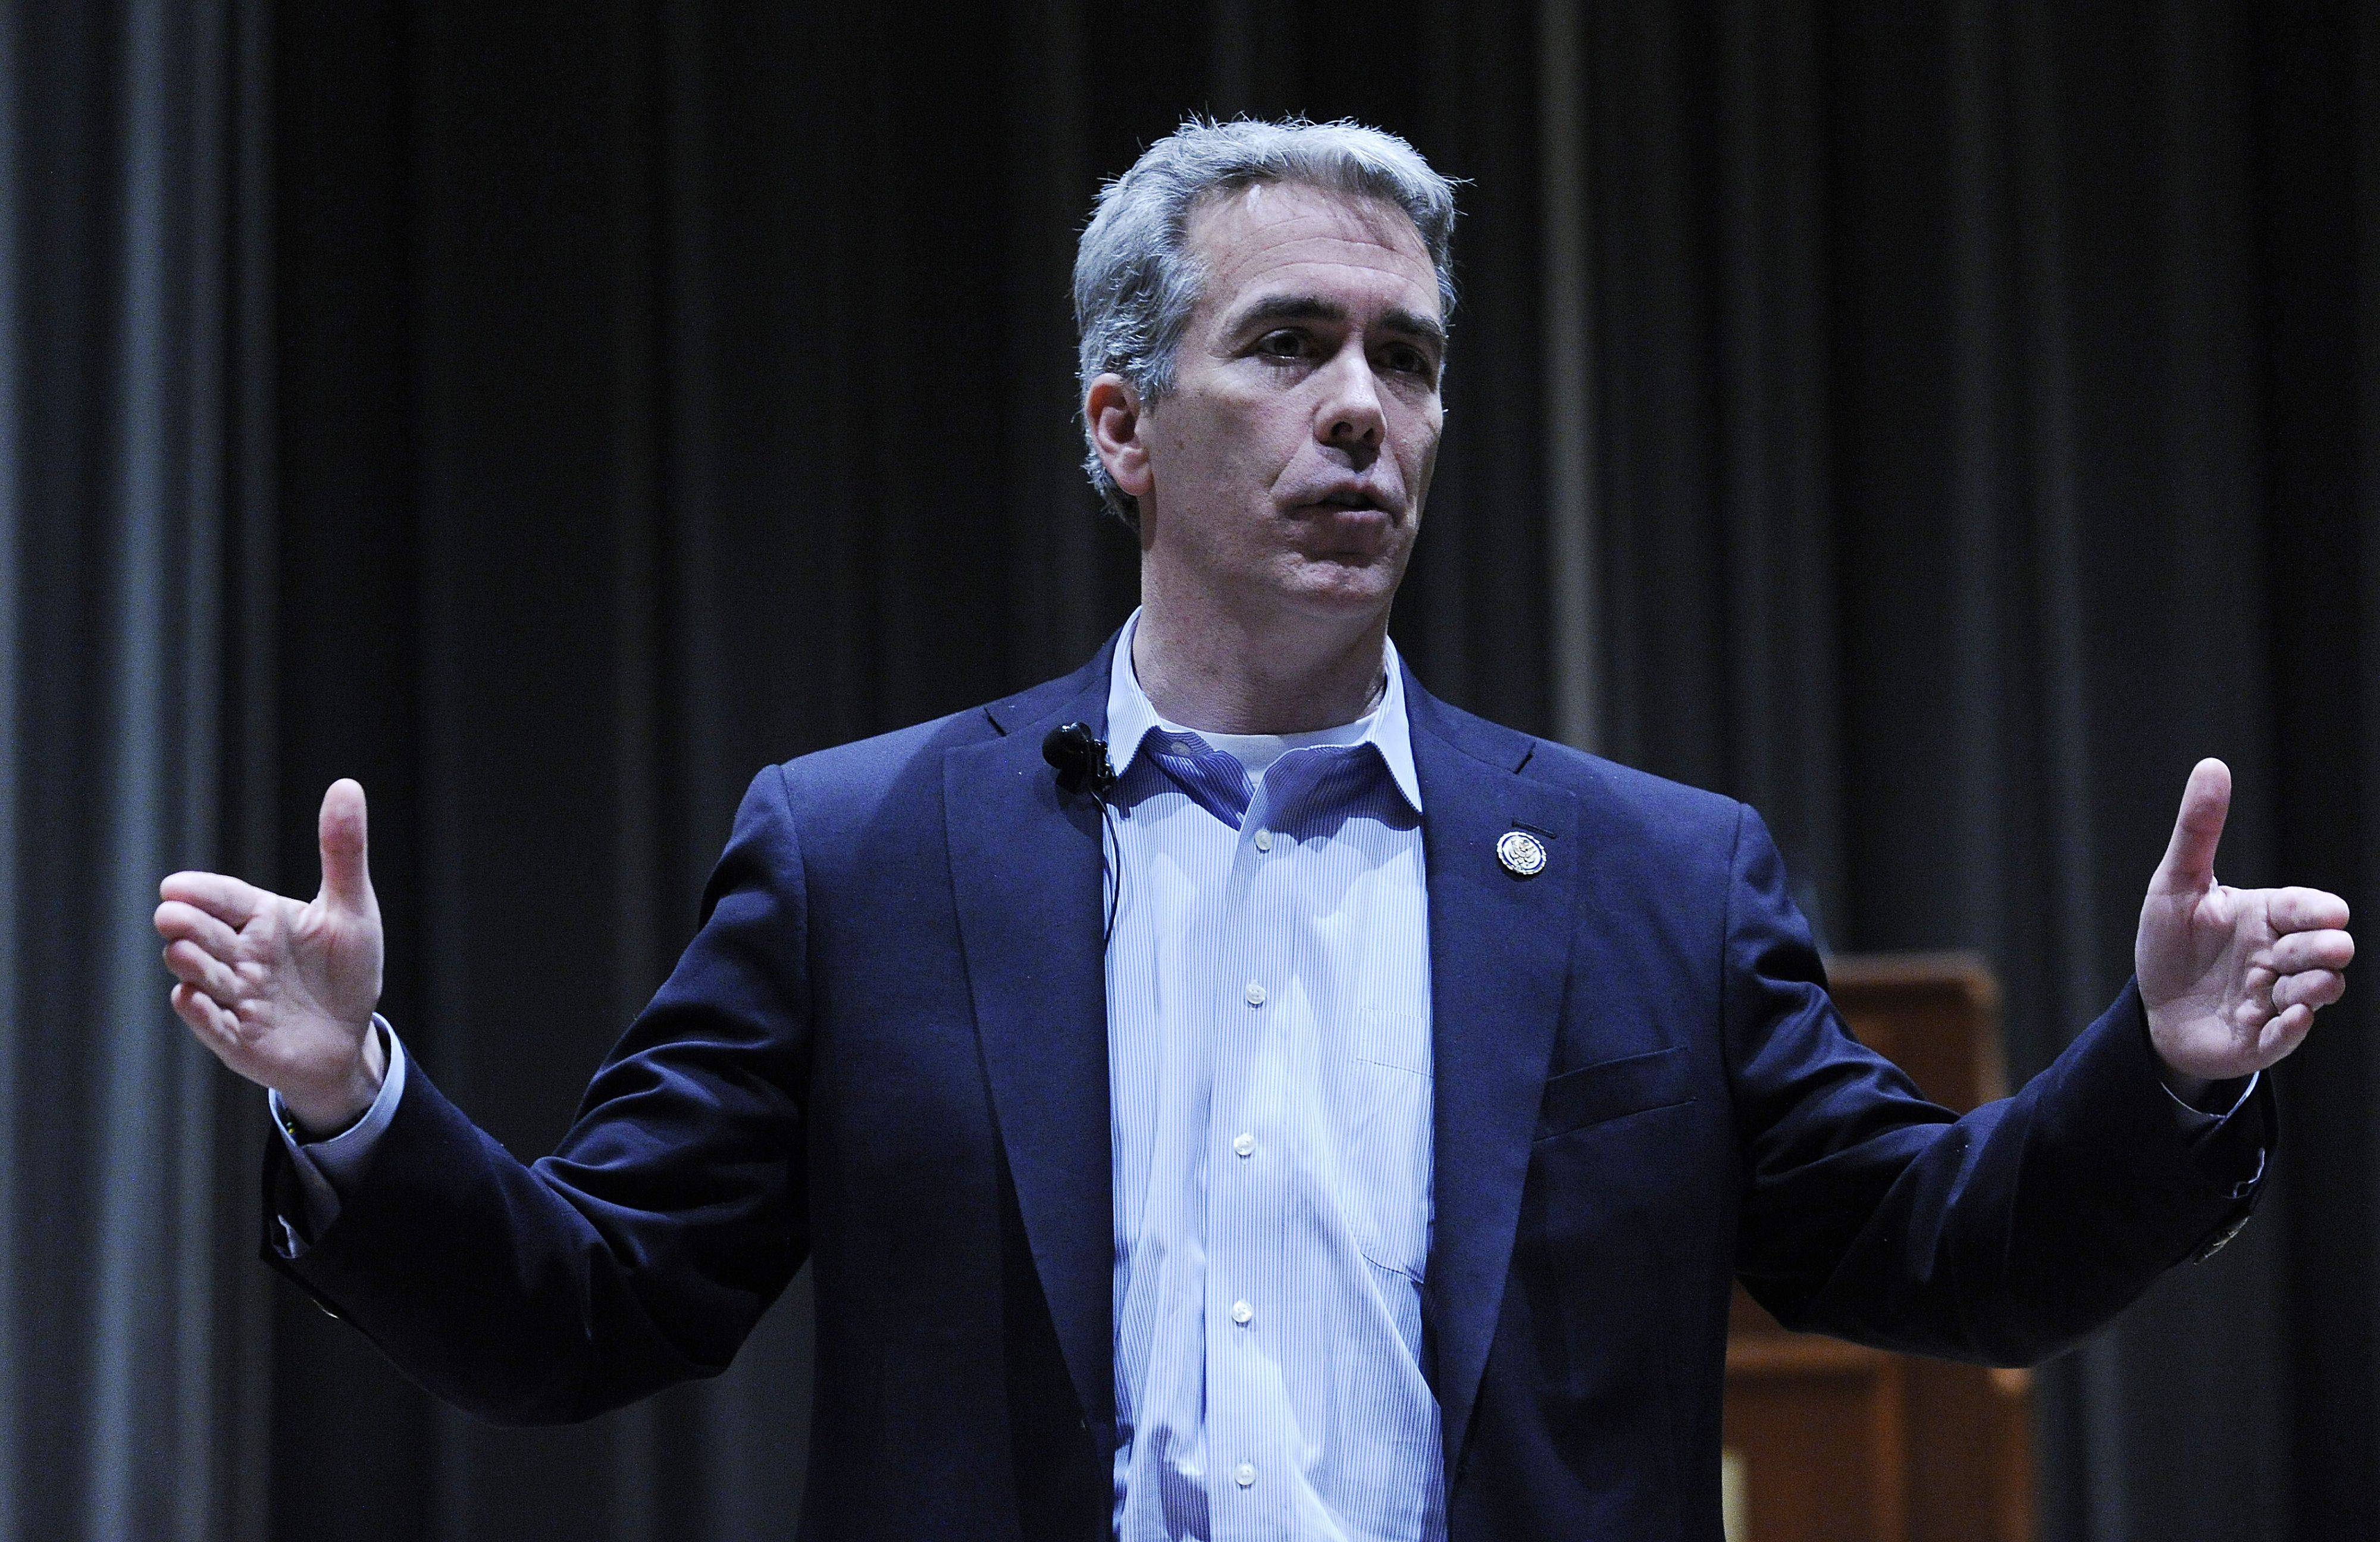 Congressman Joe Walsh is expected to announce as early as the next day or two whether he will run for re-election in a district different from the one where he has already been campaigning.